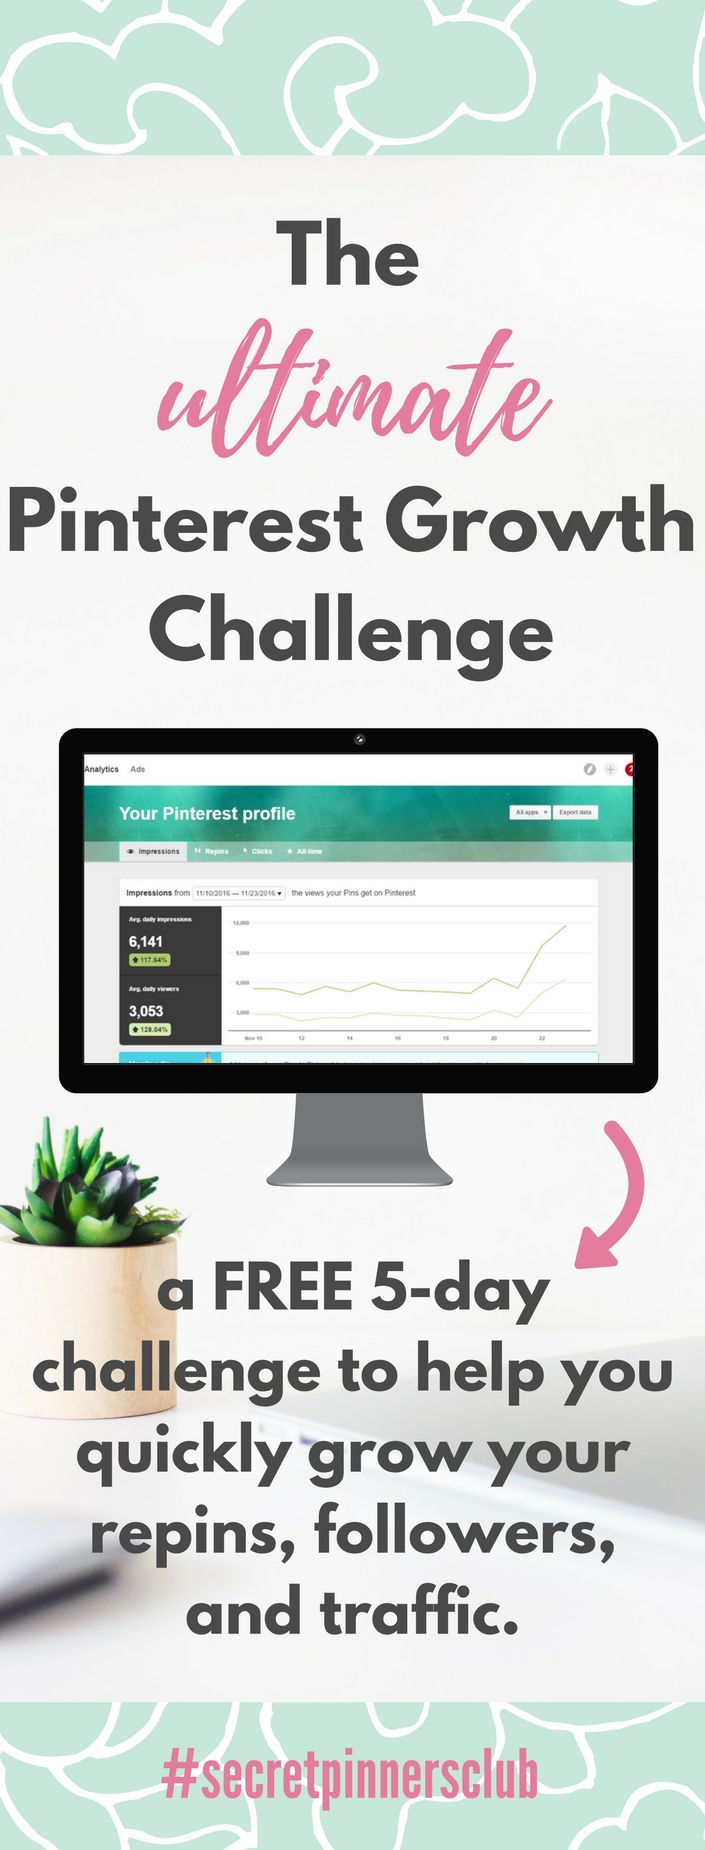 A free 5-day challenge to grow your Pinterest account. This challenge includes 4 video tutorials with 5 different Pinterest strategies for growth. Find out how to use Pinterest with these tips.